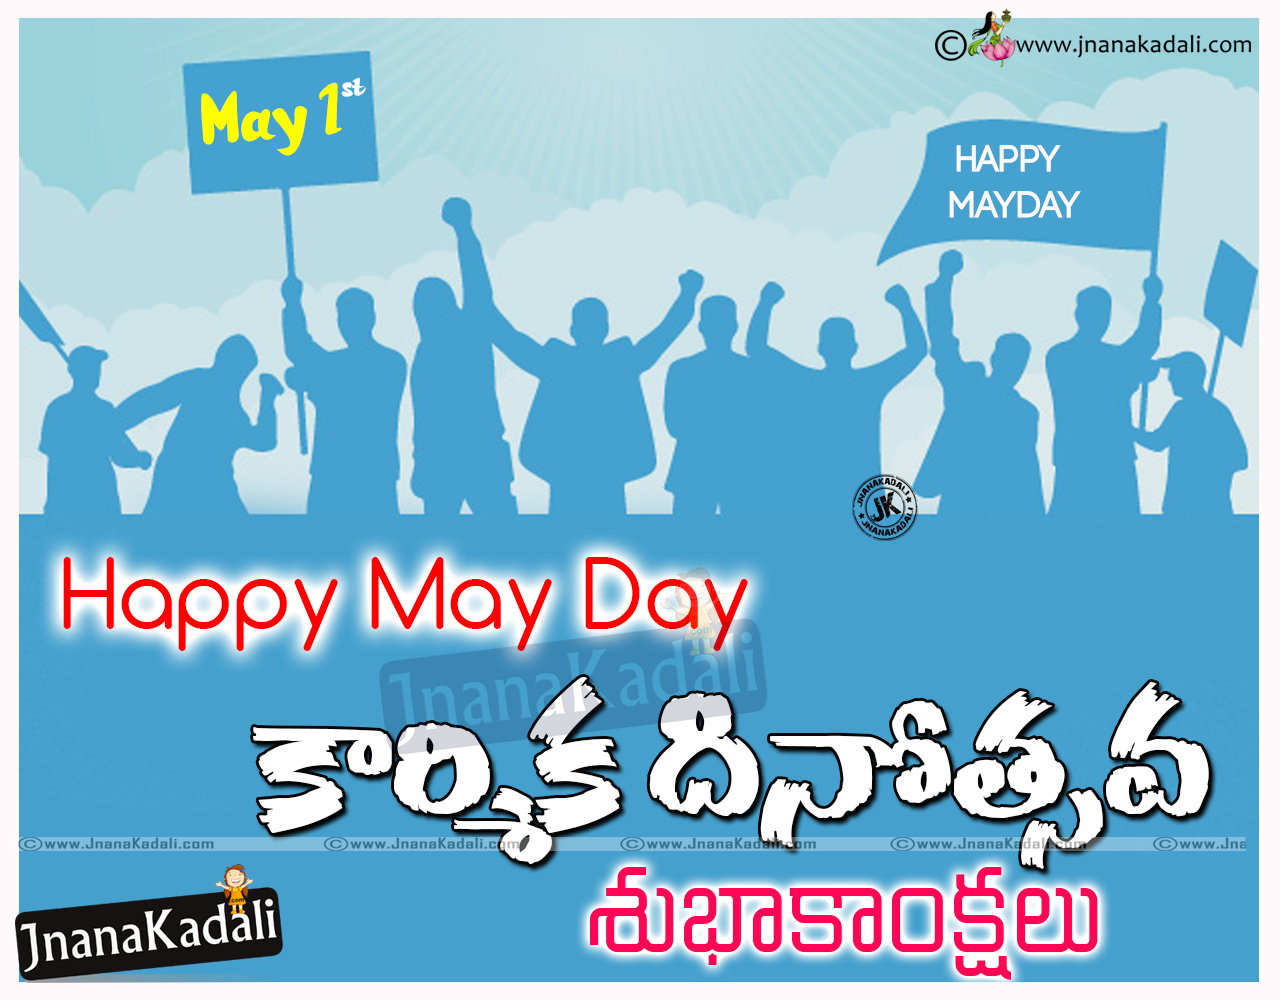 May day telugu greetings quotes wallpapers images kavitalu jnana here is a telugu language may day quotes and greetings images online may day best kristyandbryce Image collections